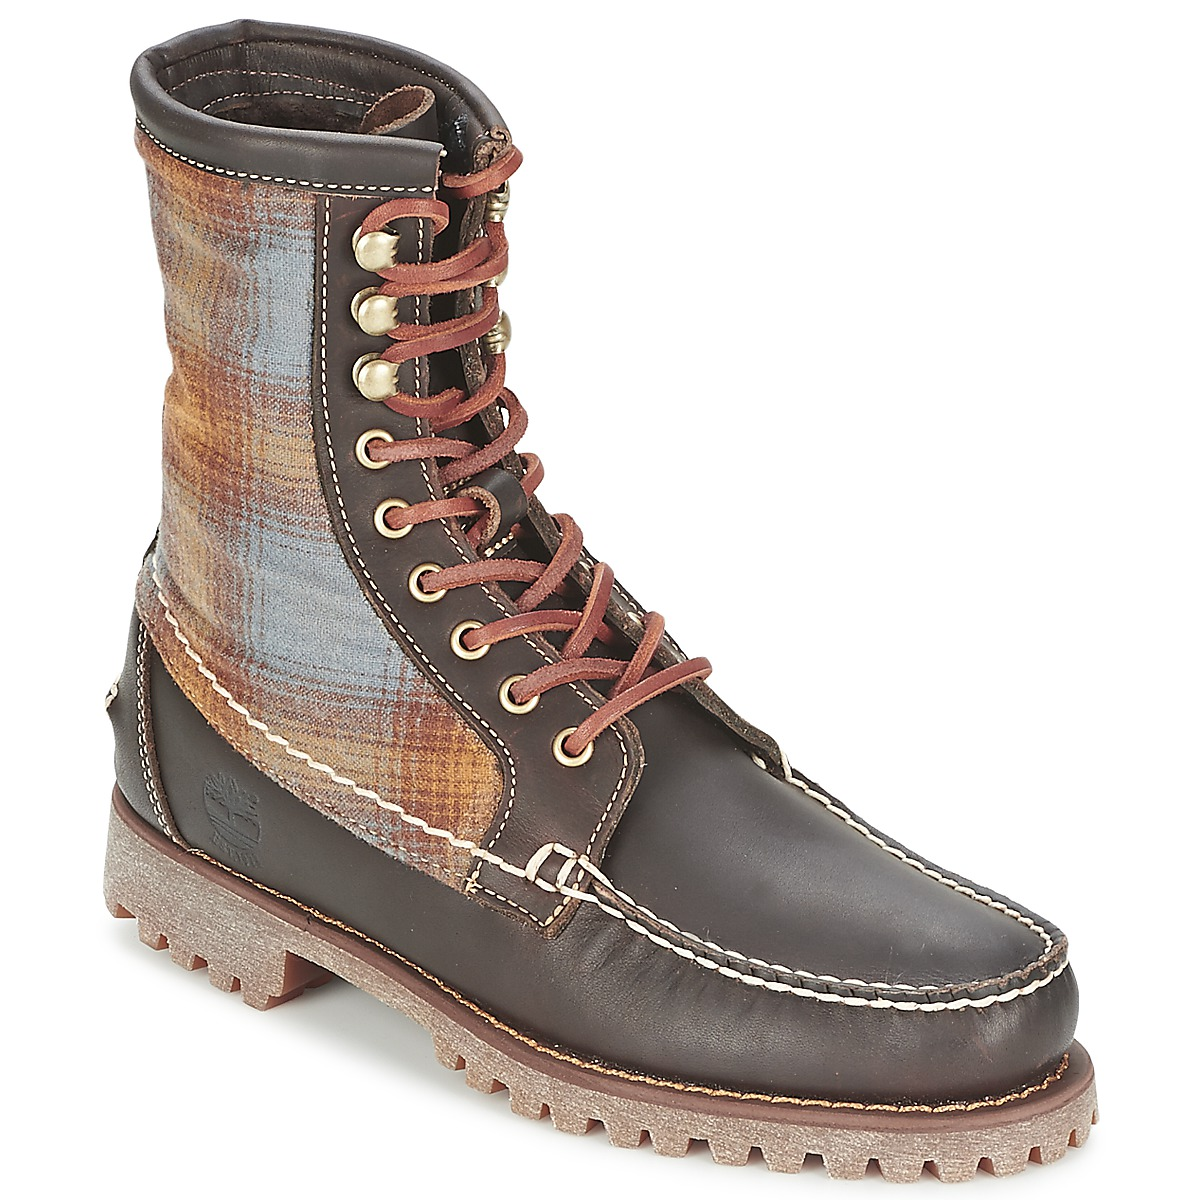 Kengät Timberland AUTHENTICS 8 IN RUGGED HANDSEWN F/L BOOT